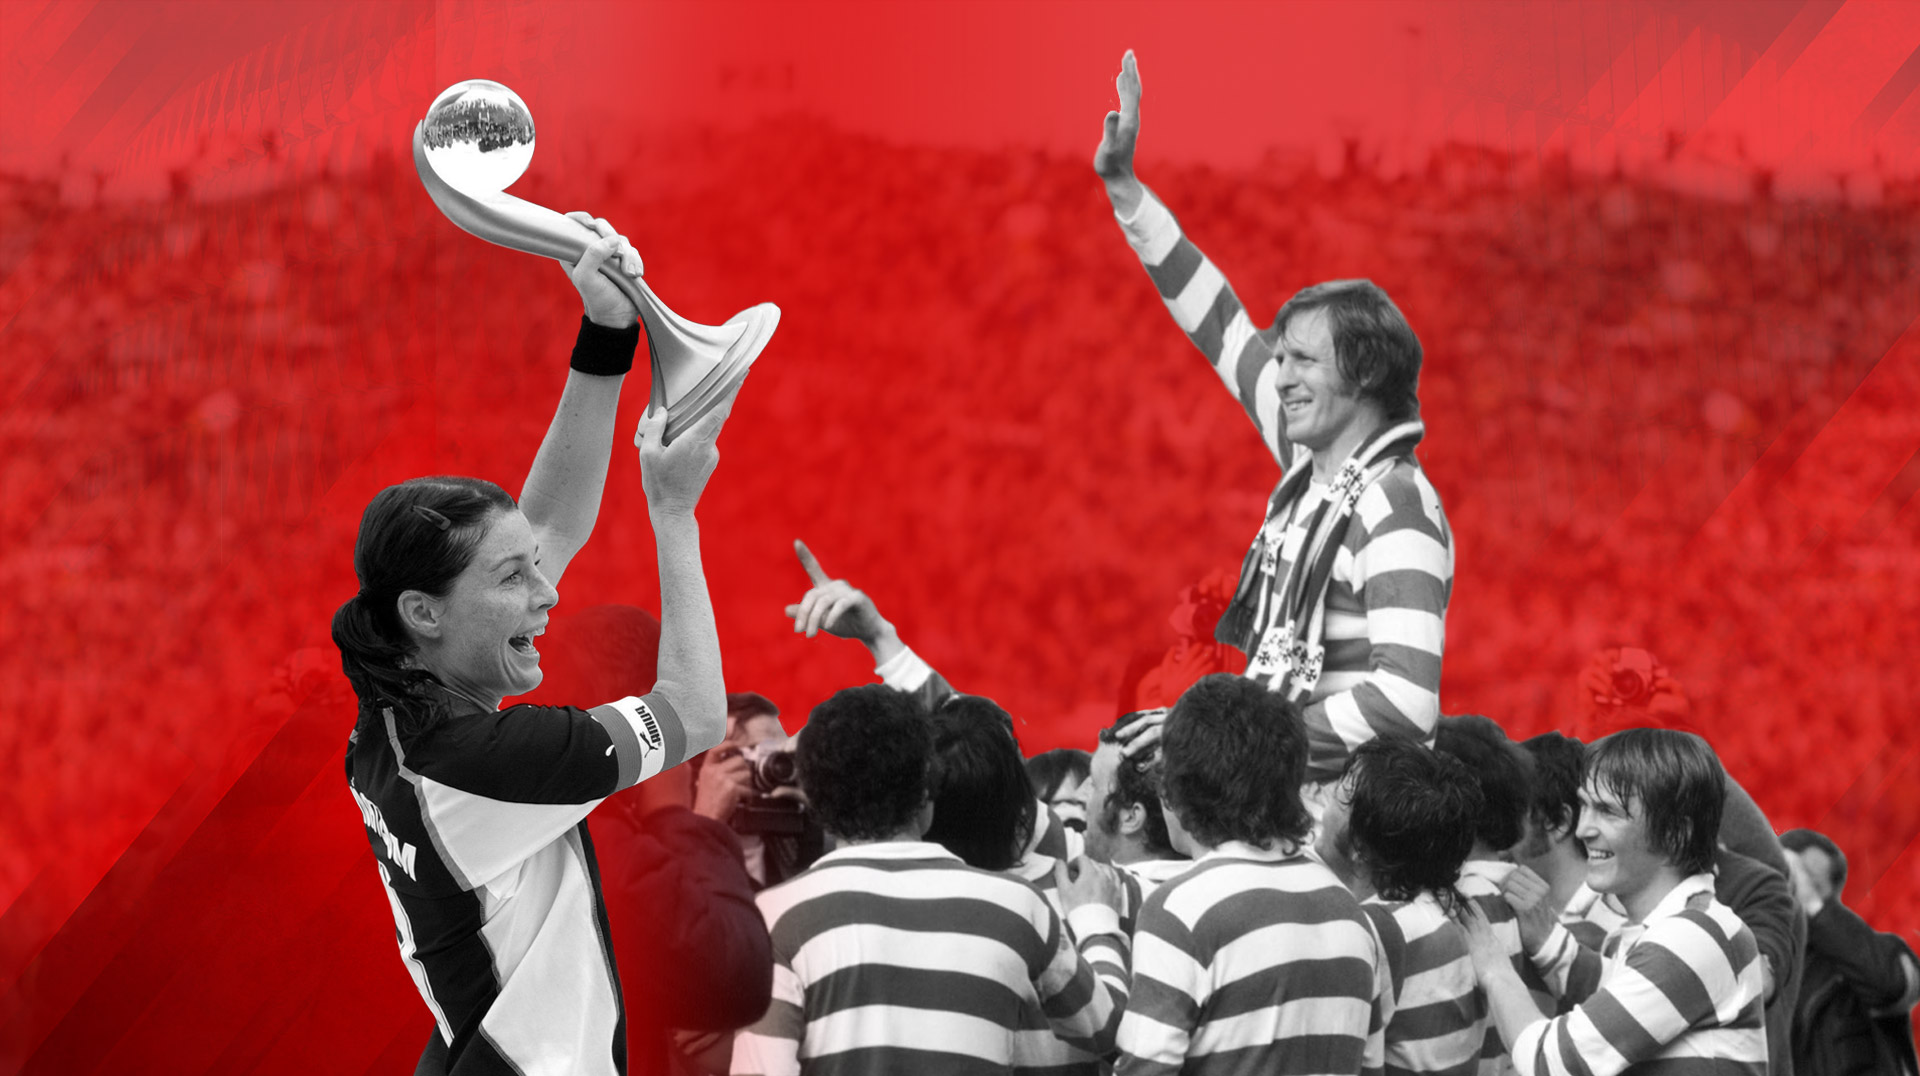 Billy McNeill y Malin Moström, premiados por el Athletic como One Club Awards